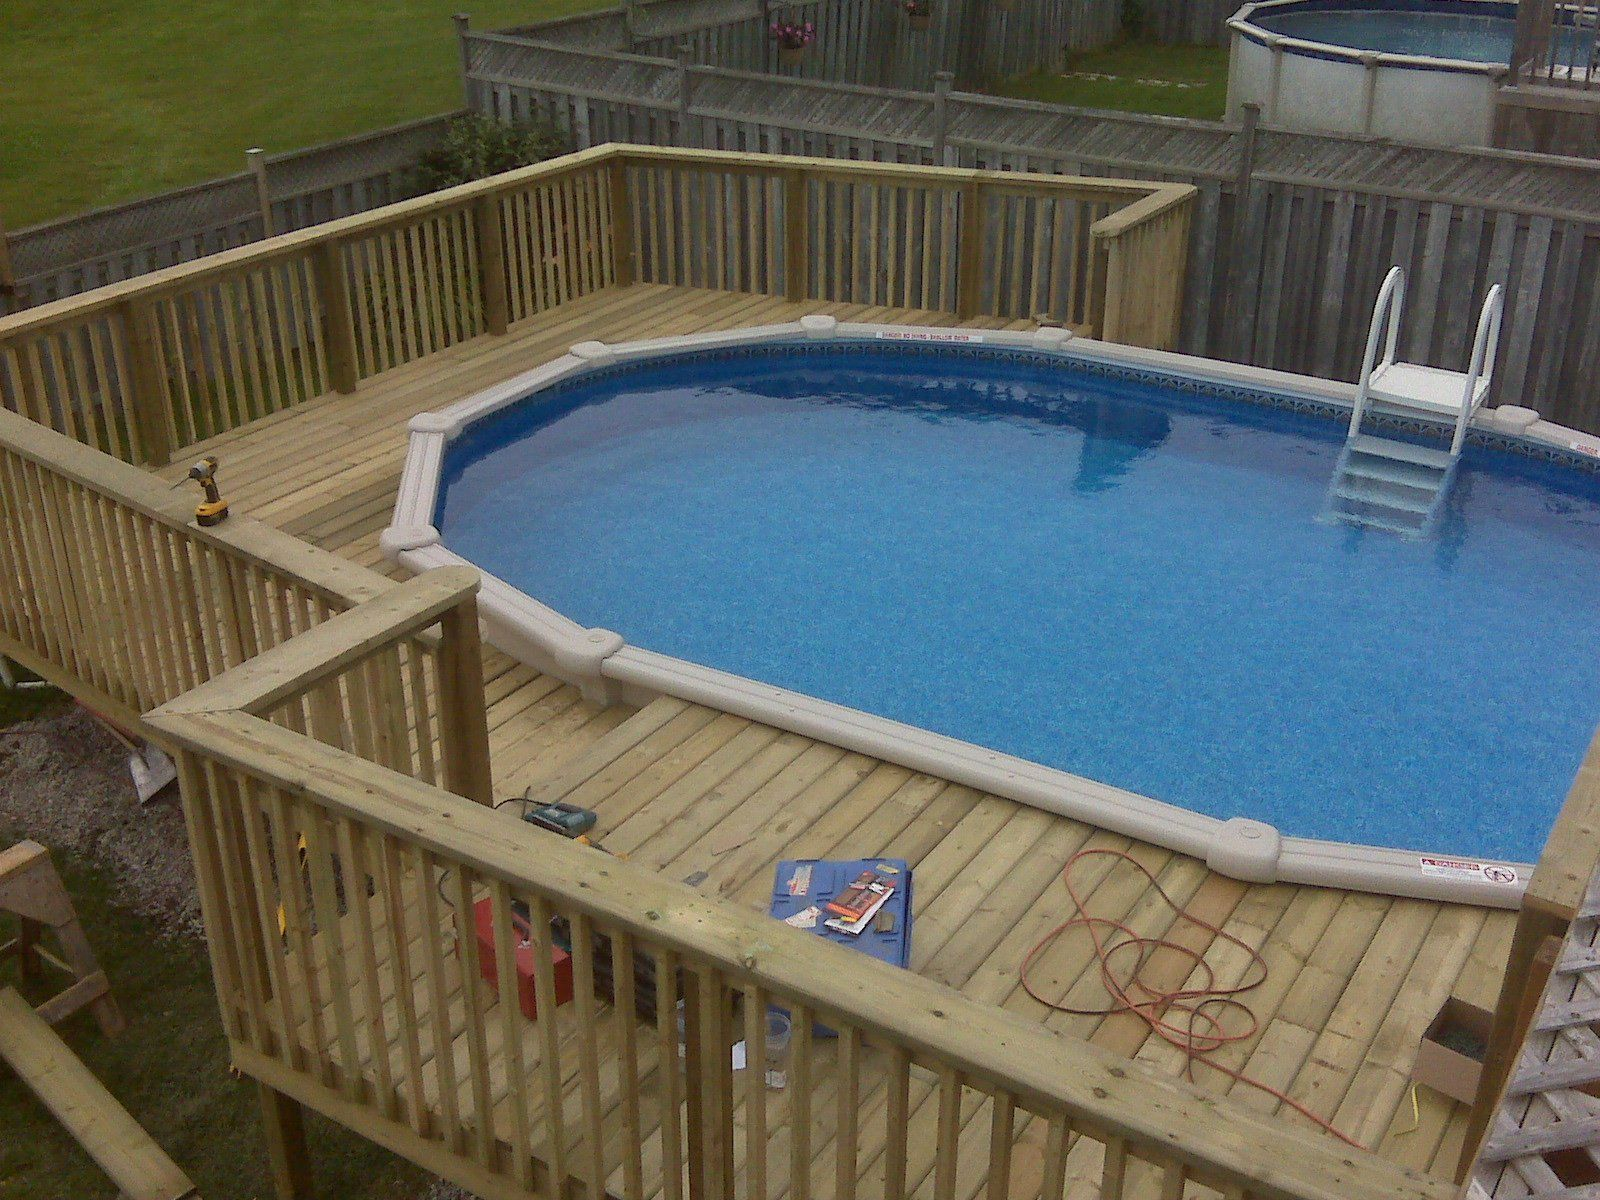 Deck Plan For Above Ground Pools Cool Home Decorations Design list of things